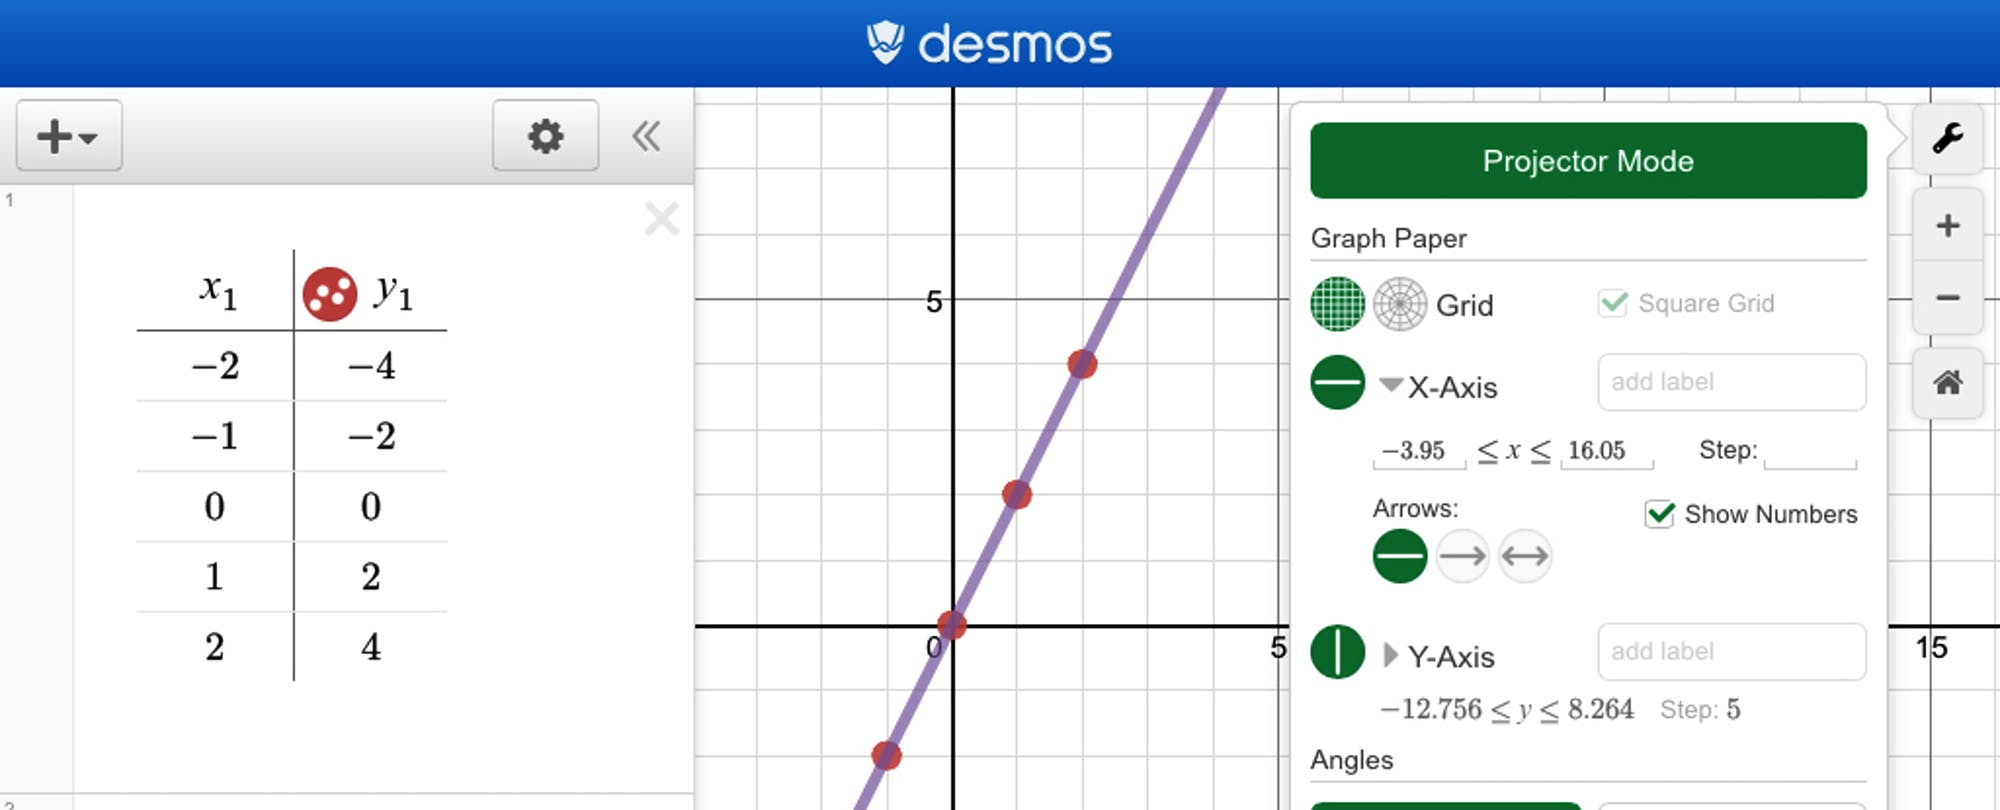 Texas District Pilots Desmos as Alternative to Graphing Calculators